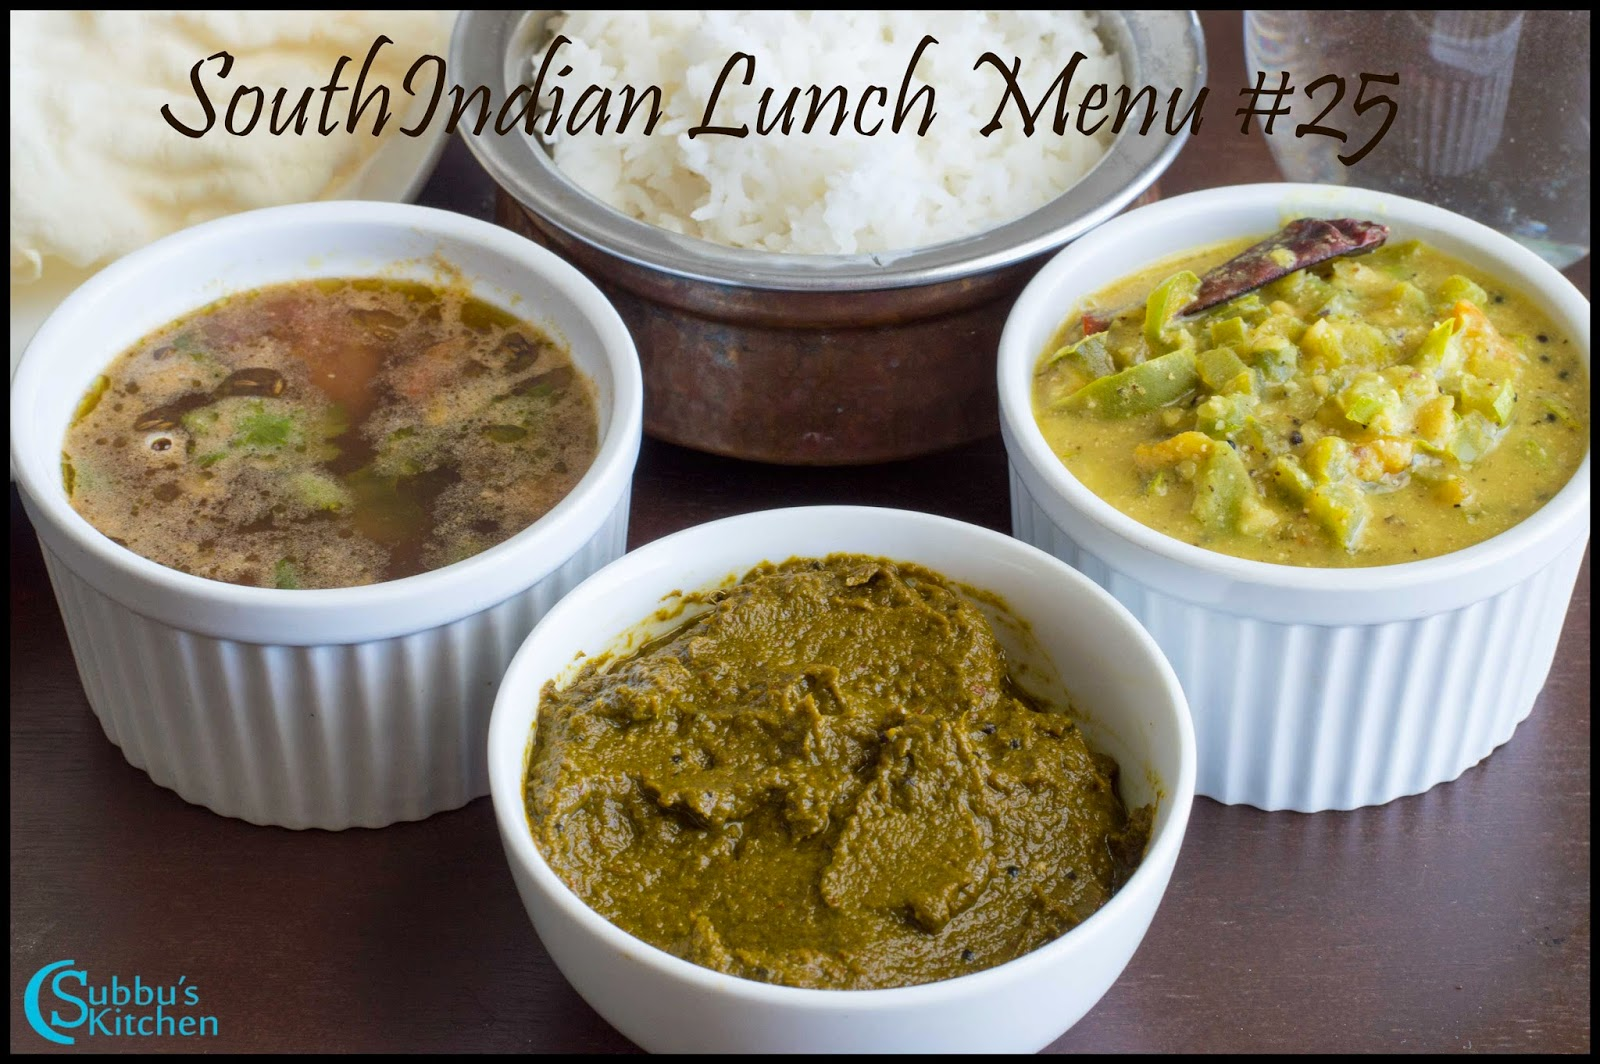 South Indian Lunch Menu 25 - Coriander Leaves Thokku, Capsicum Kootu, Mysore Rasam, Curd, Papad and Rice